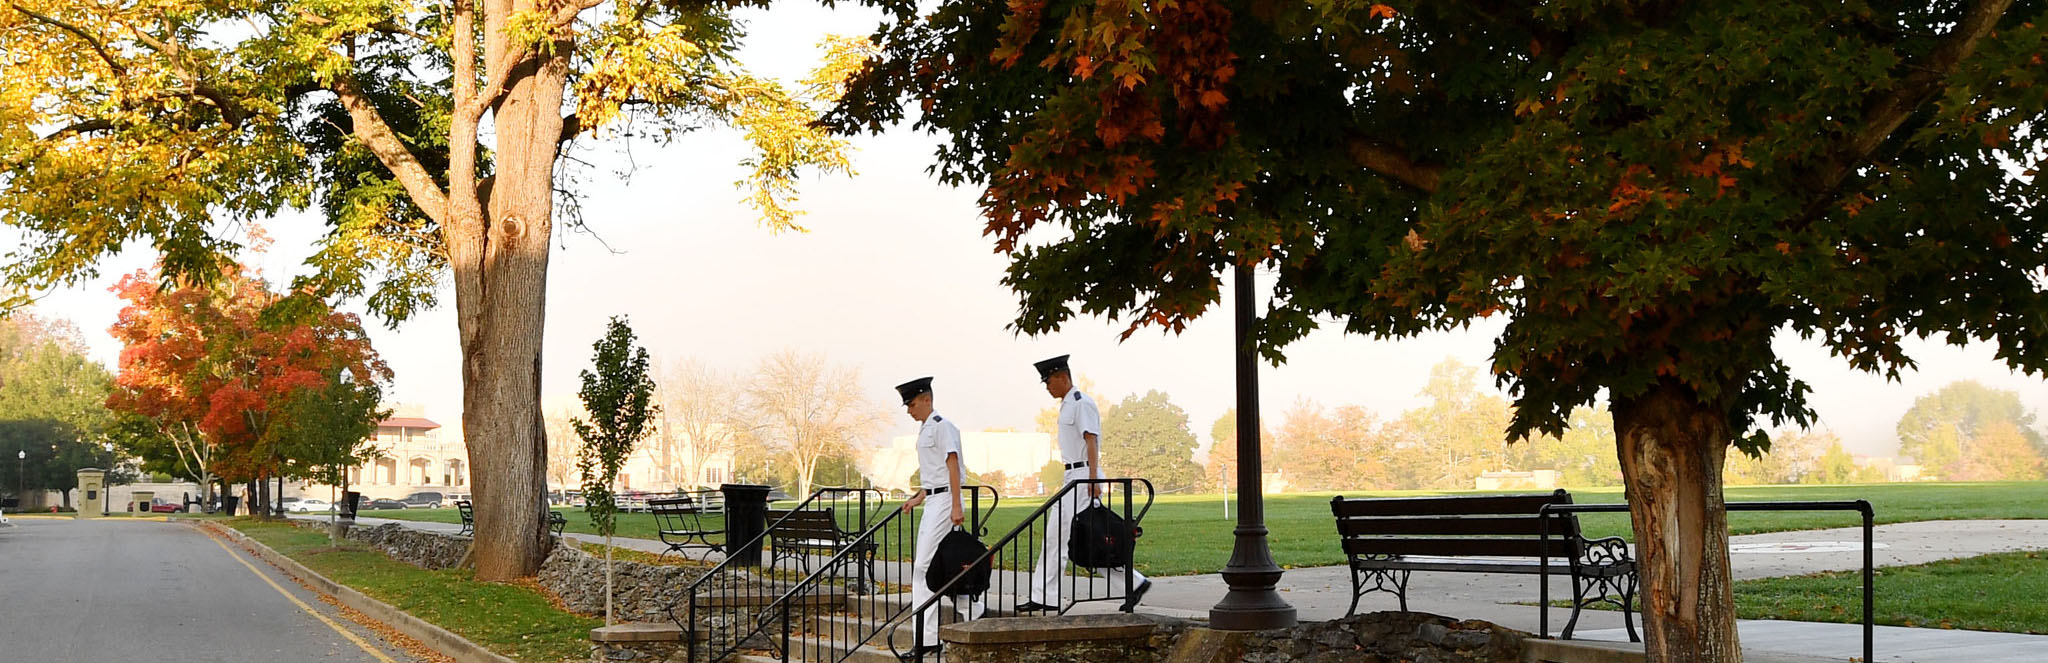 Photo of cadets walking on post with autumnal foliage